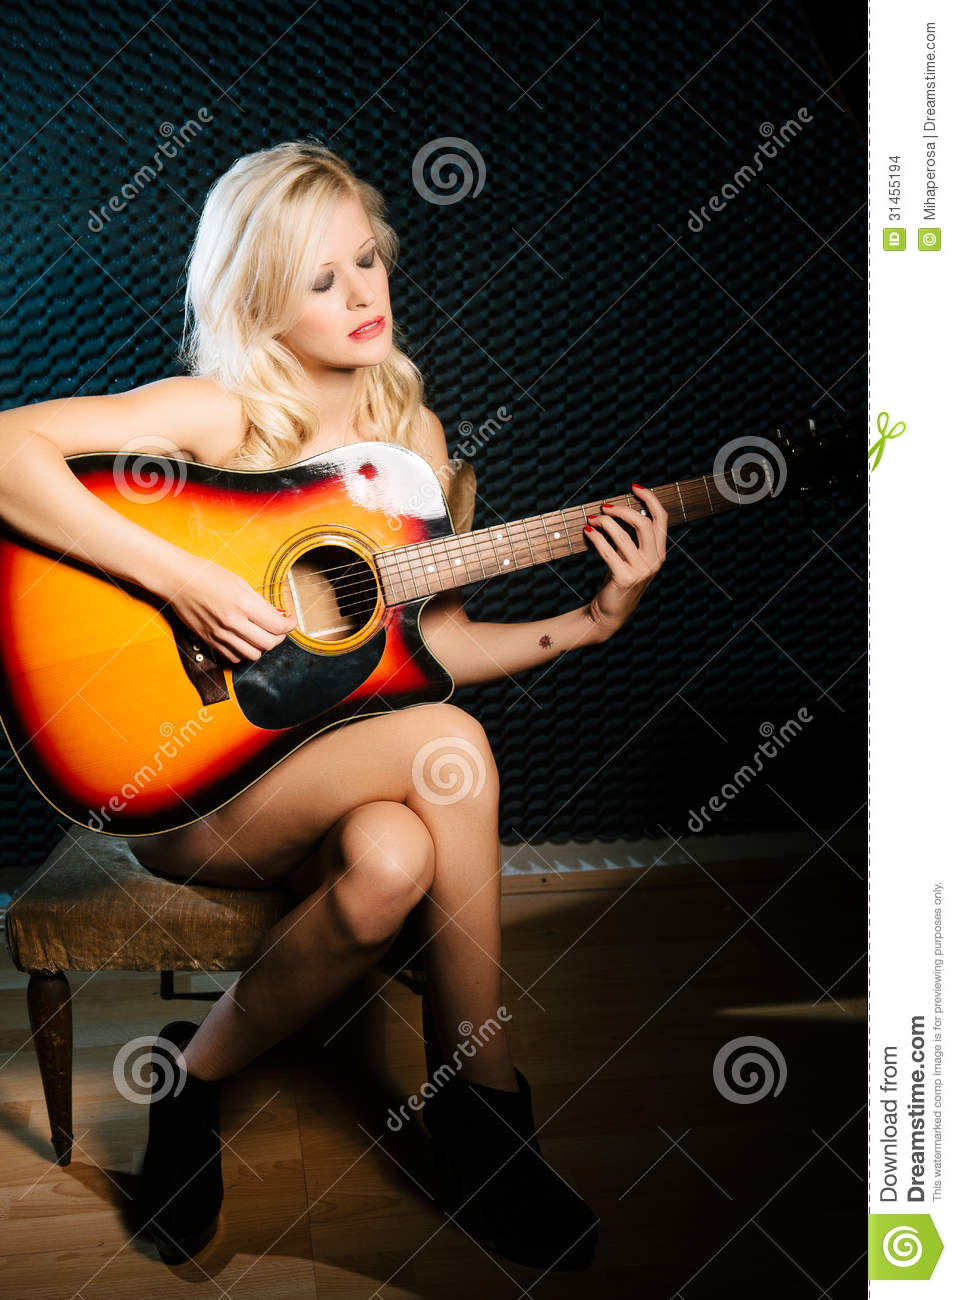 naked blonde woman playing guitar